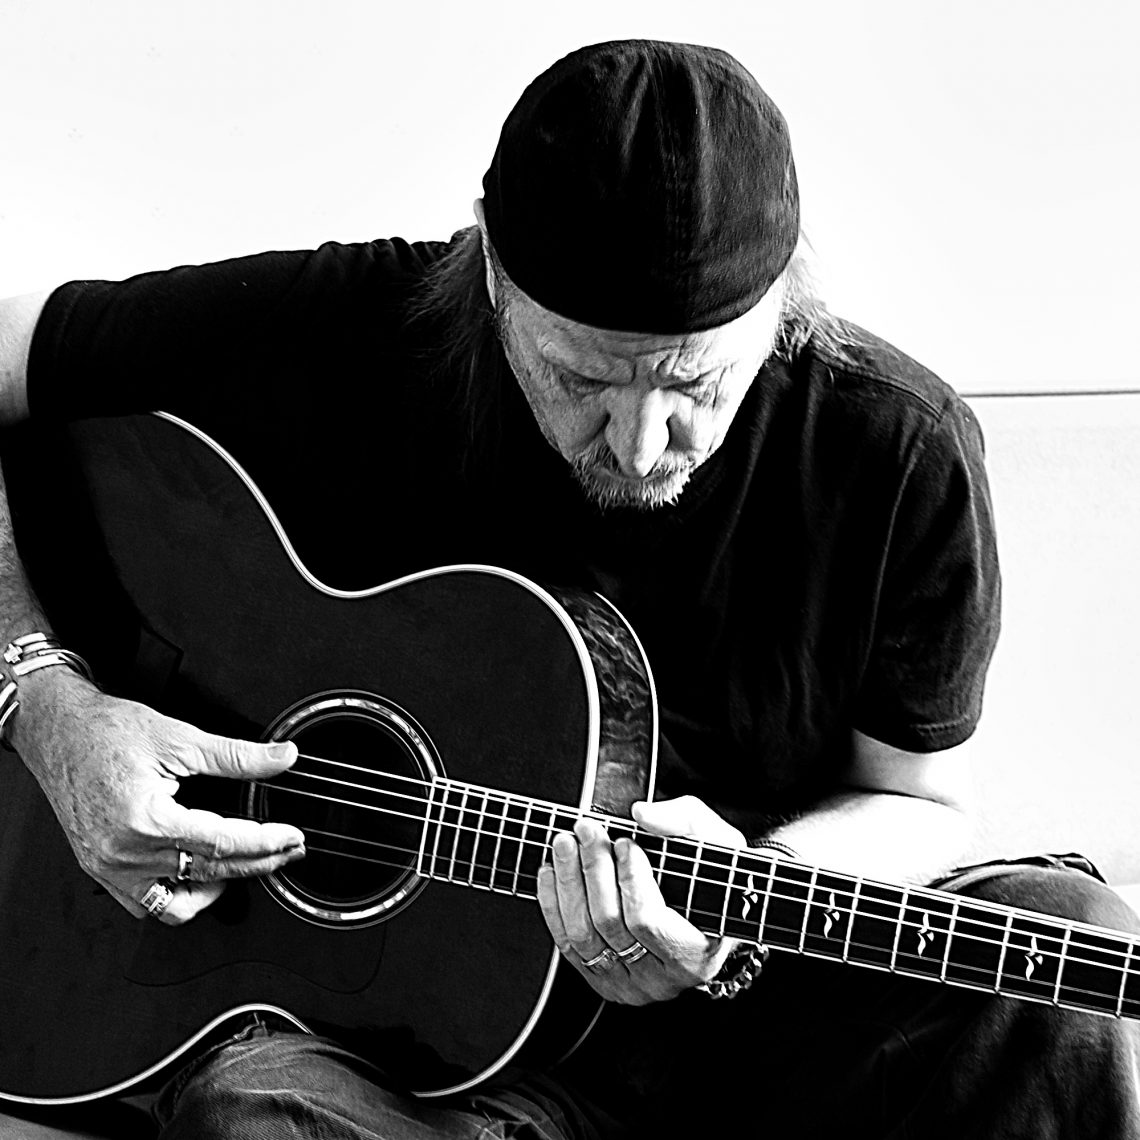 Jimmy LaFave, July 12, 1955 - May 21, 2017 (Photo Courtesy Music Road Records)